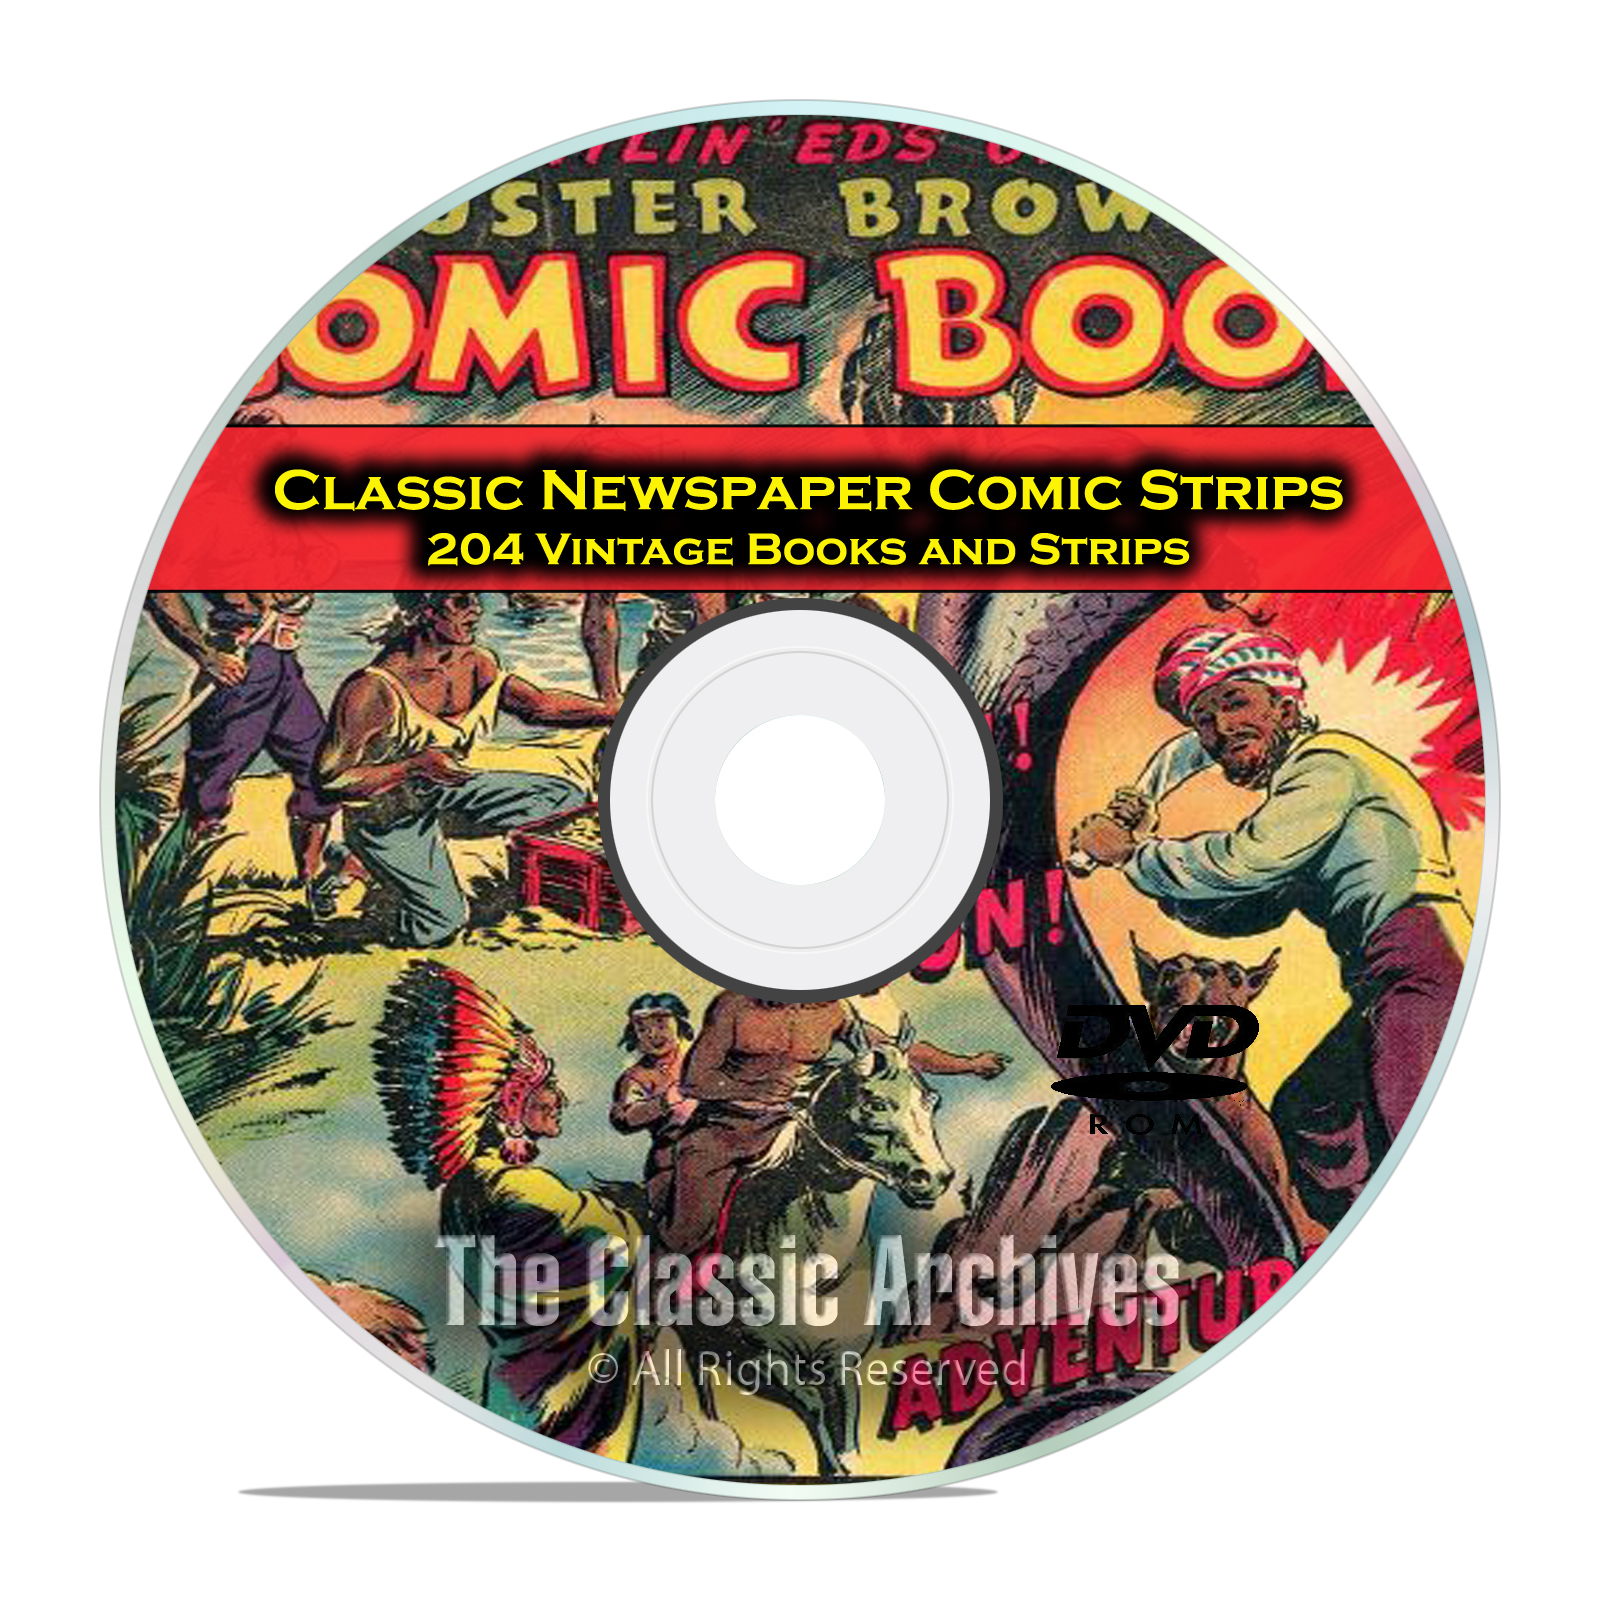 Classic Newspaper Comic Strips, Buster Brown, Nemo, Golden Age Comics DVD